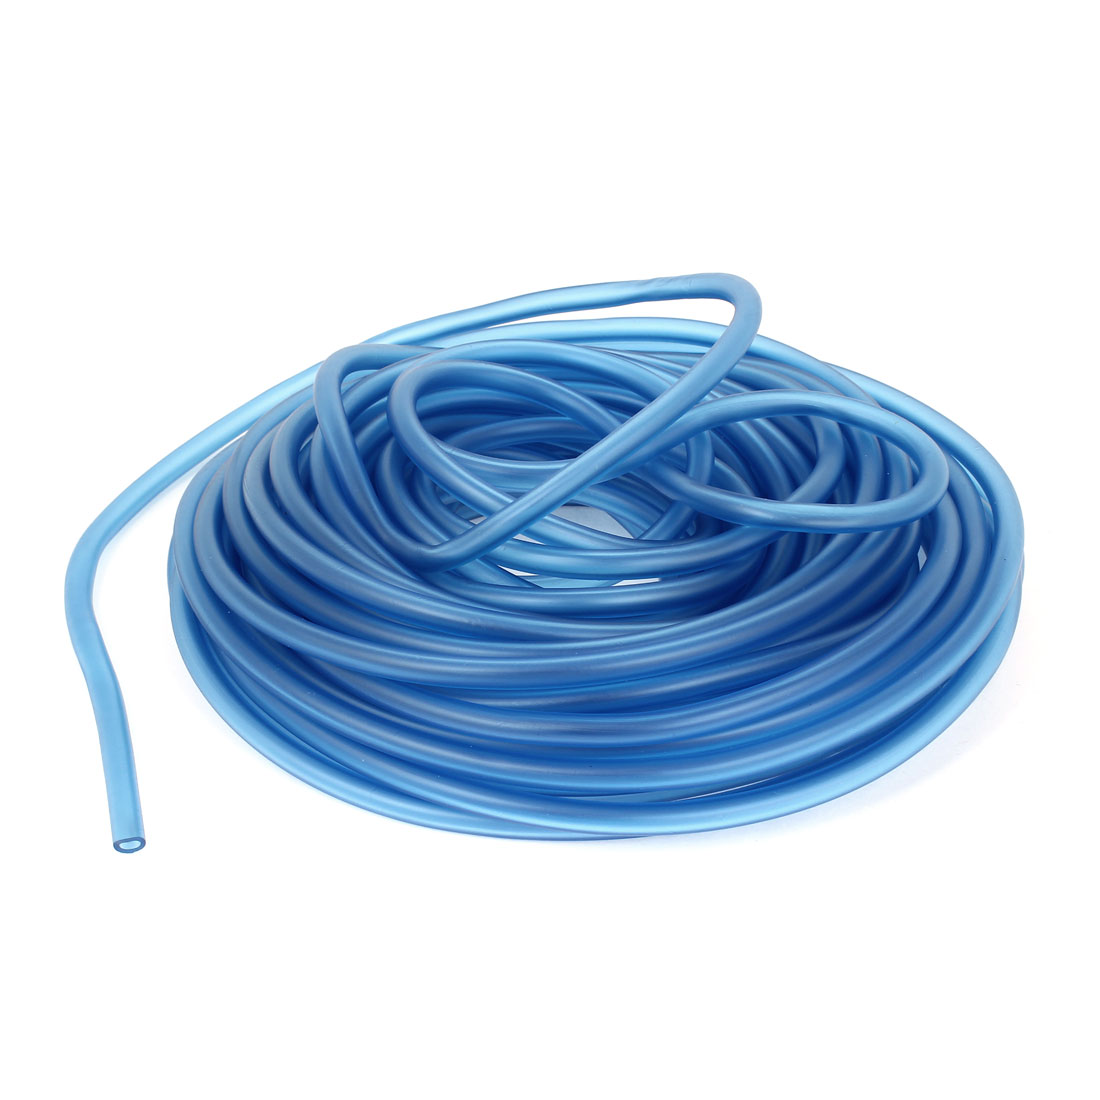 UXCELL 8Mm Od 4Mm Inner Dia Blue Silicone Fuel Line Tube Pipe 18 Meters